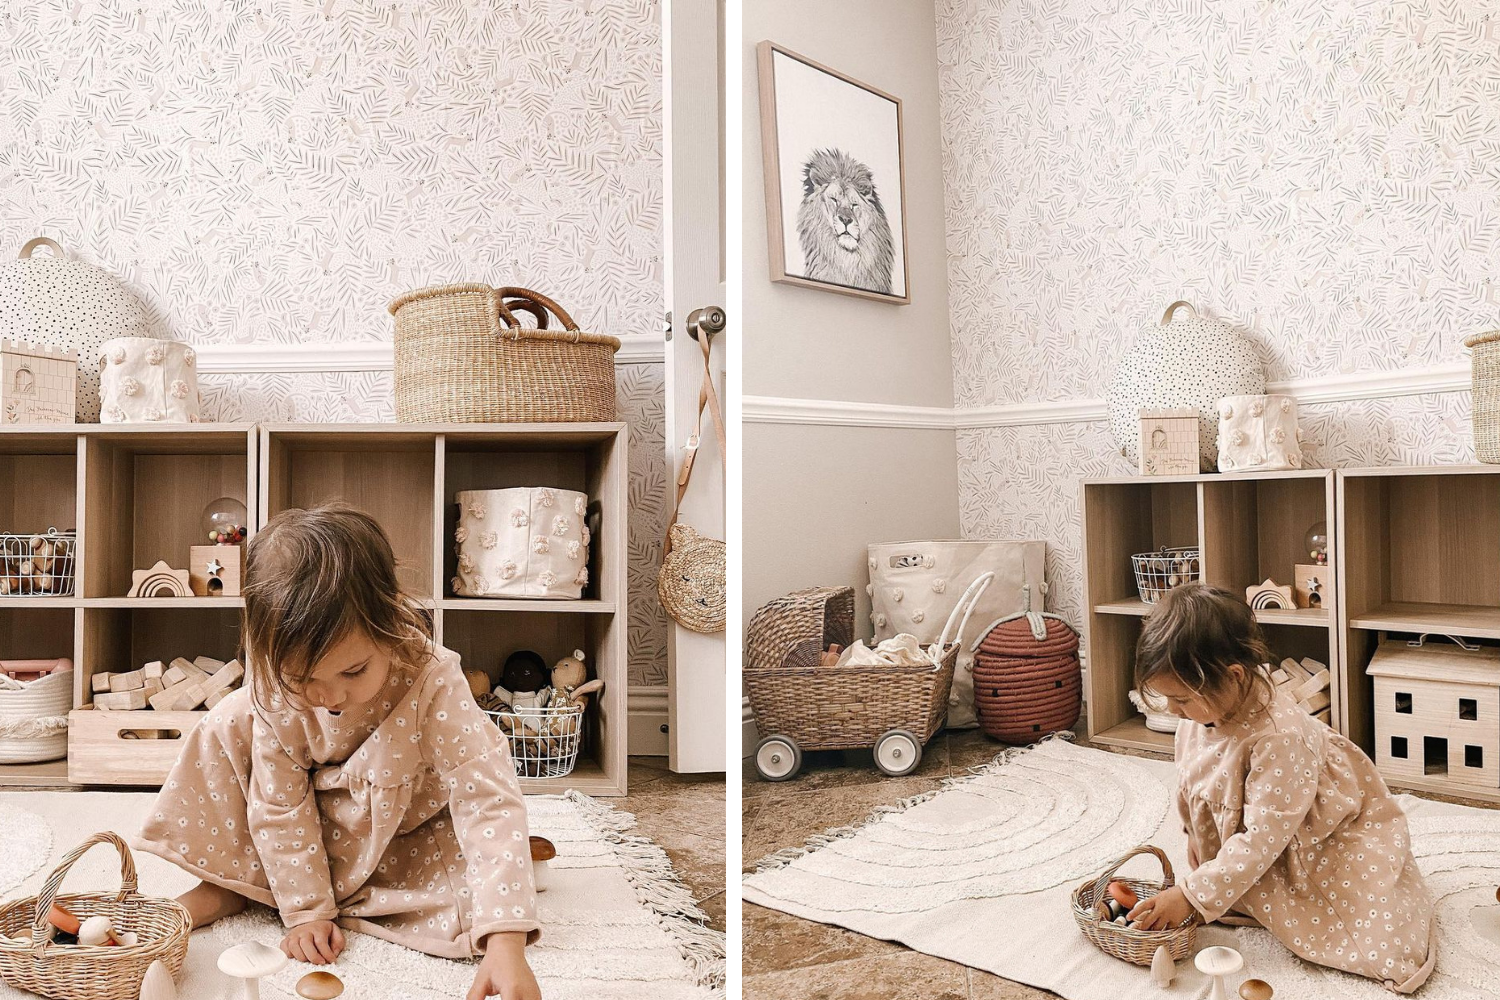 Toddler playing in a room with calming neutral wallpaper